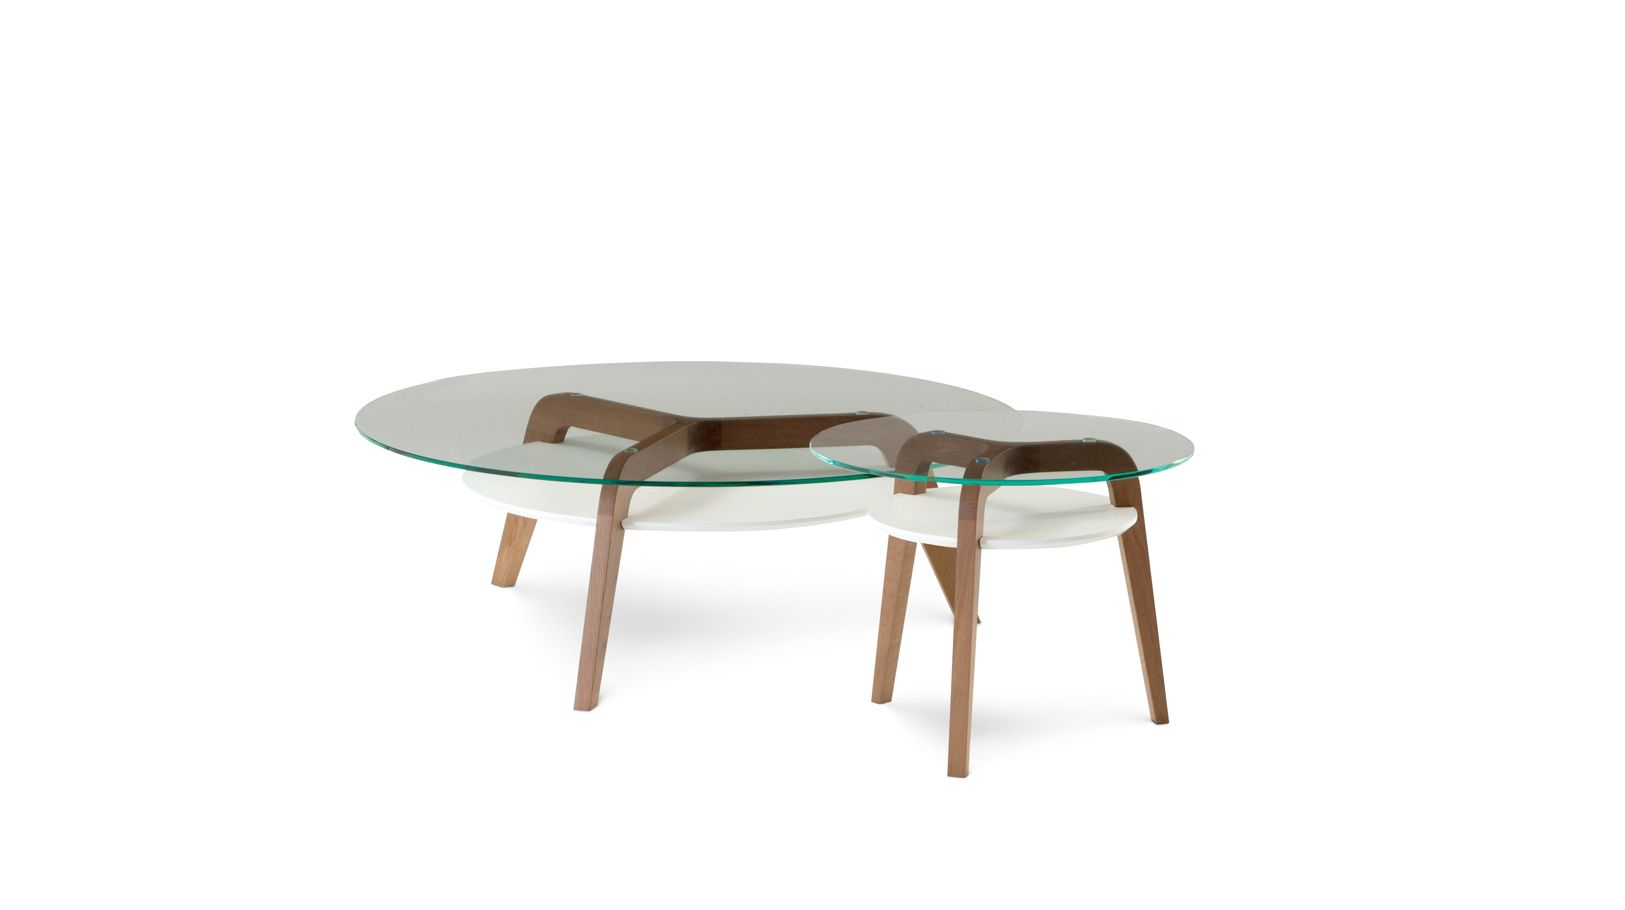 Flying glass cocktail table roche bobois - Tables basses soldes ...